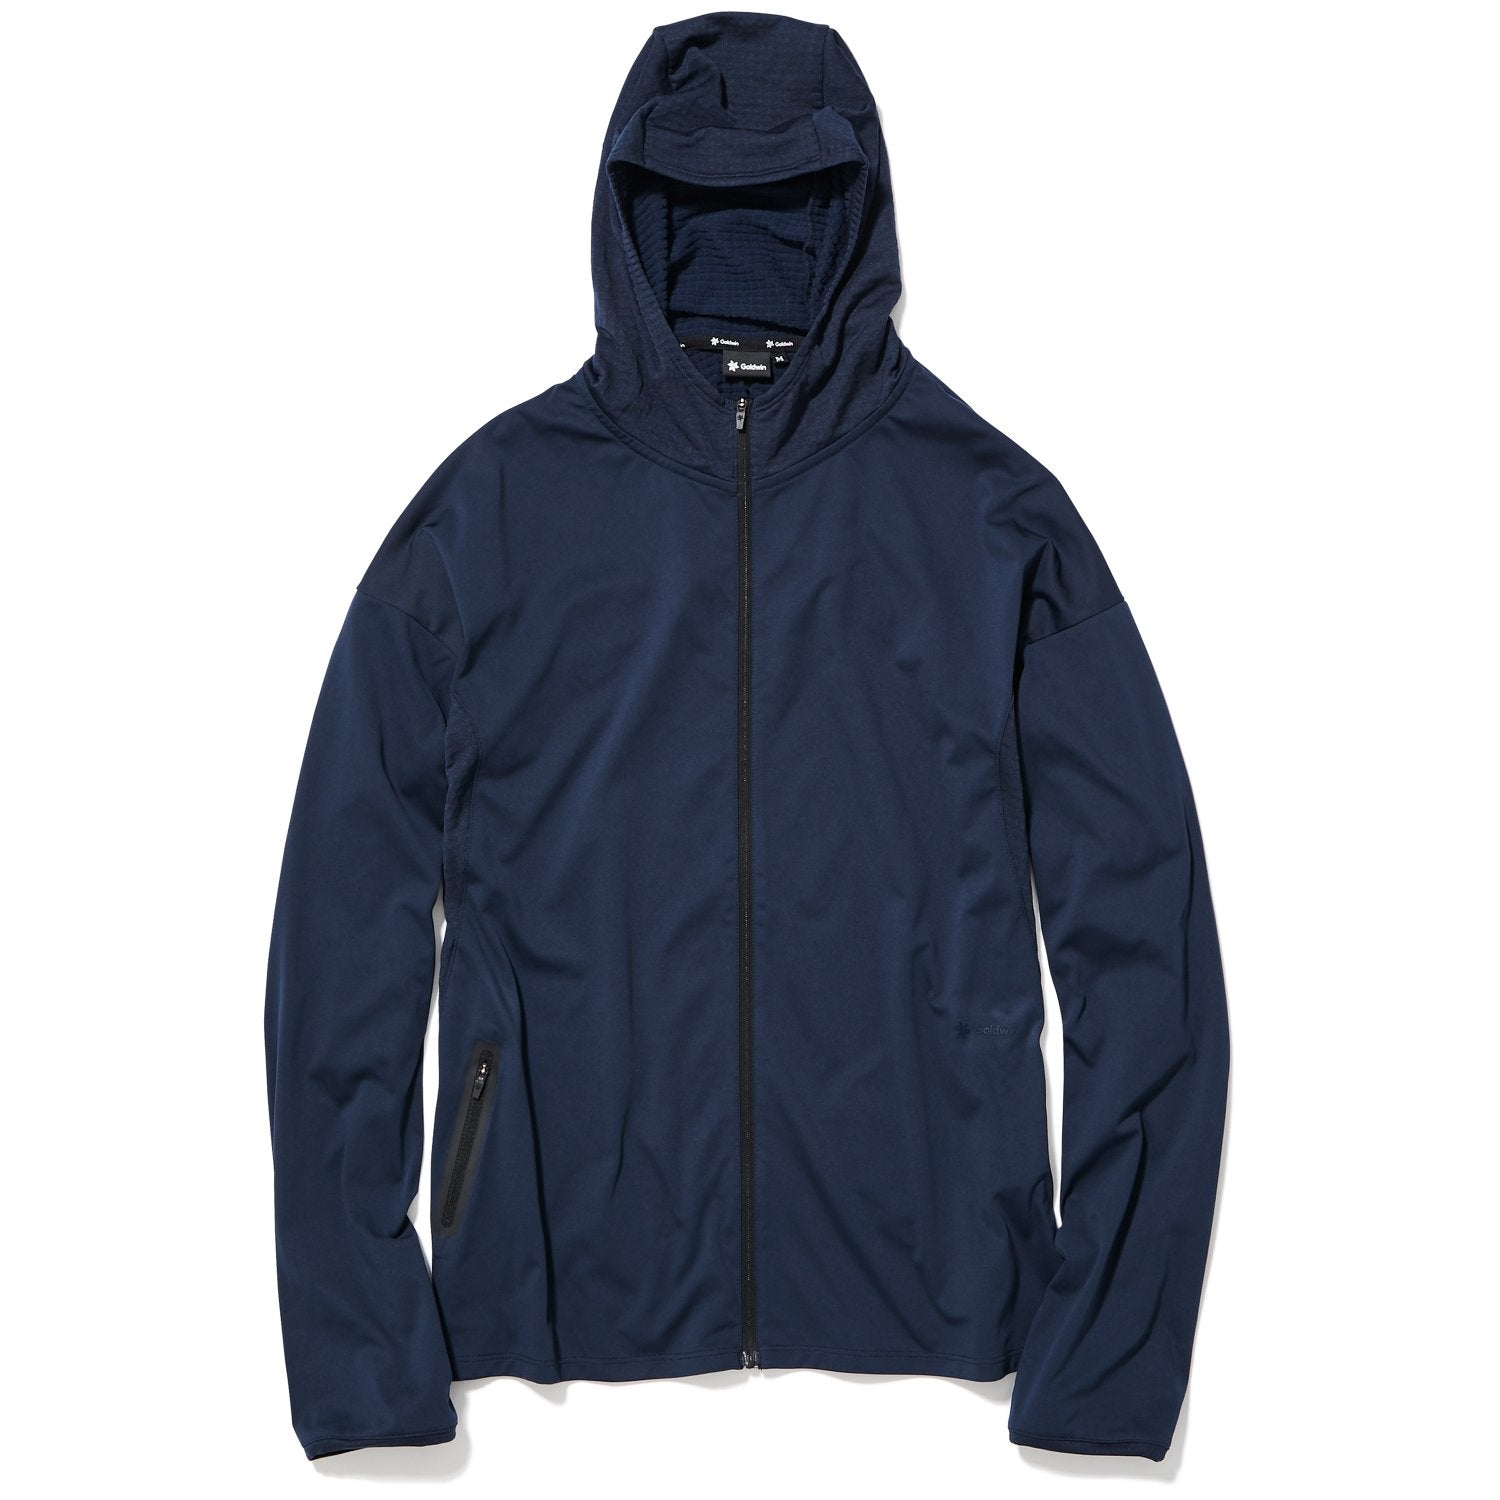 FLEECE VENTILATION HOODIE JACKET